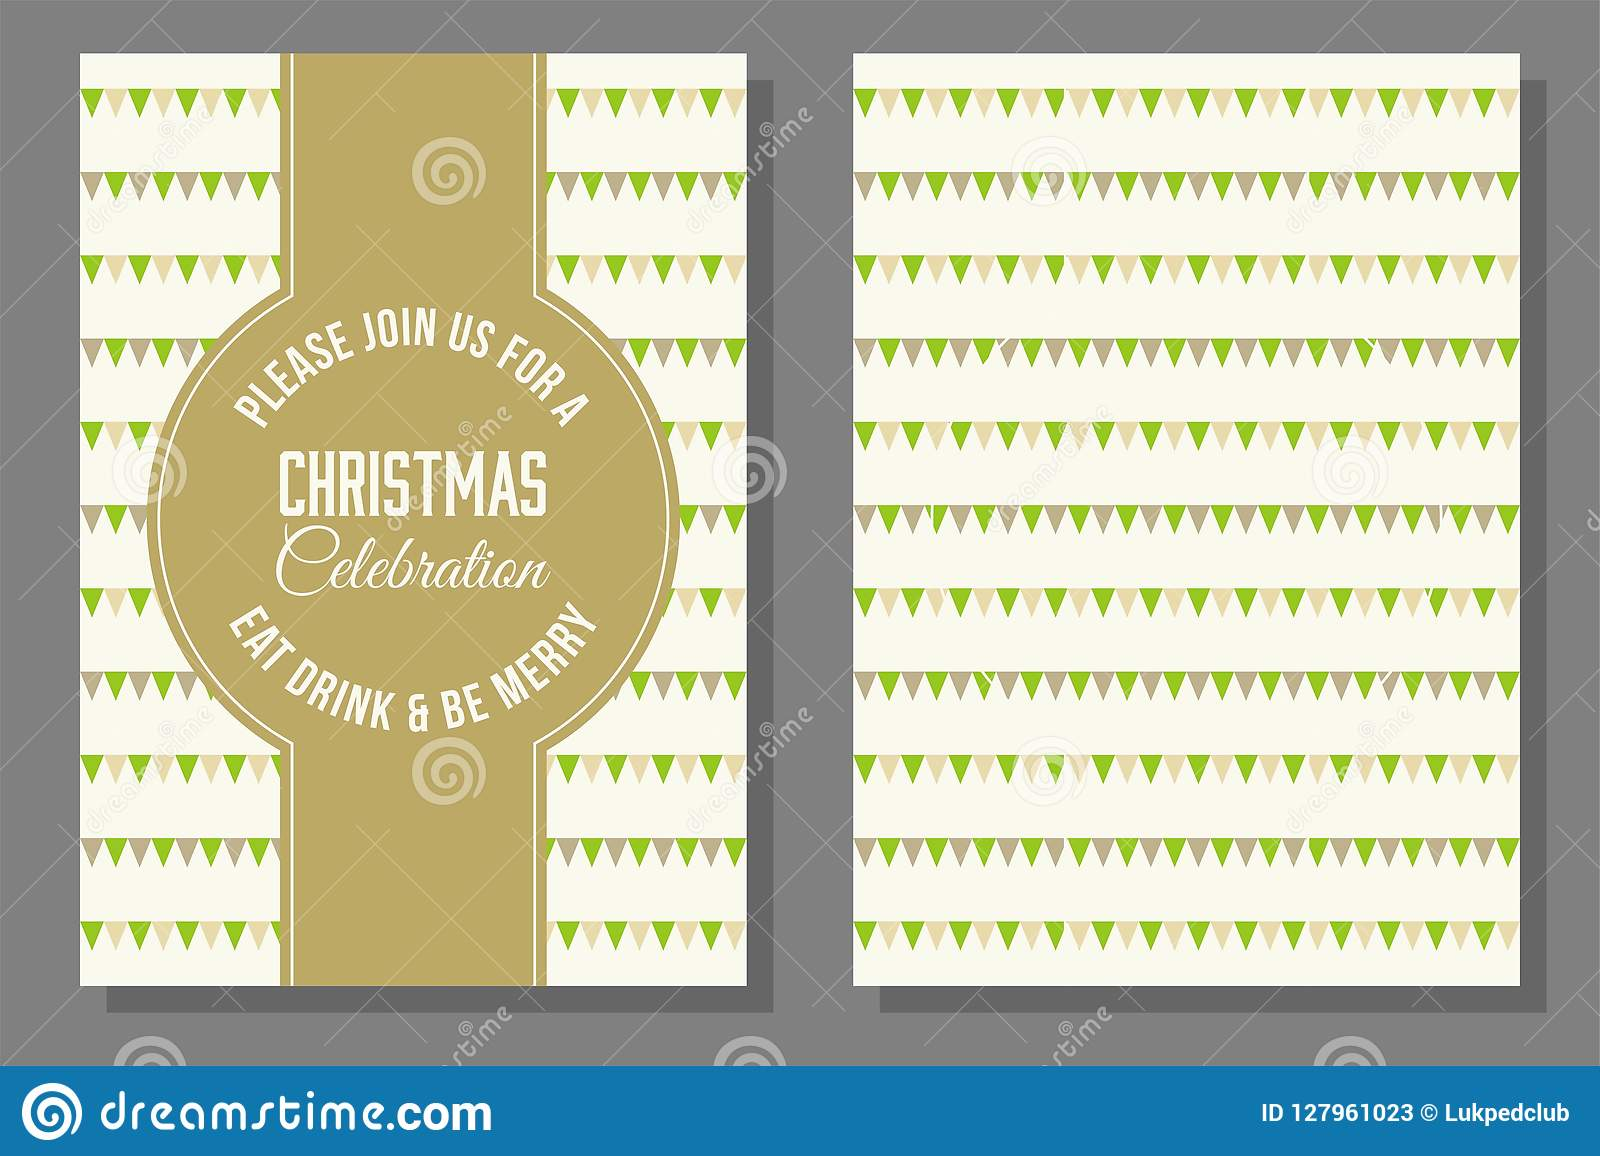 Christmas Theme Poster And Invitation Card Template Stock